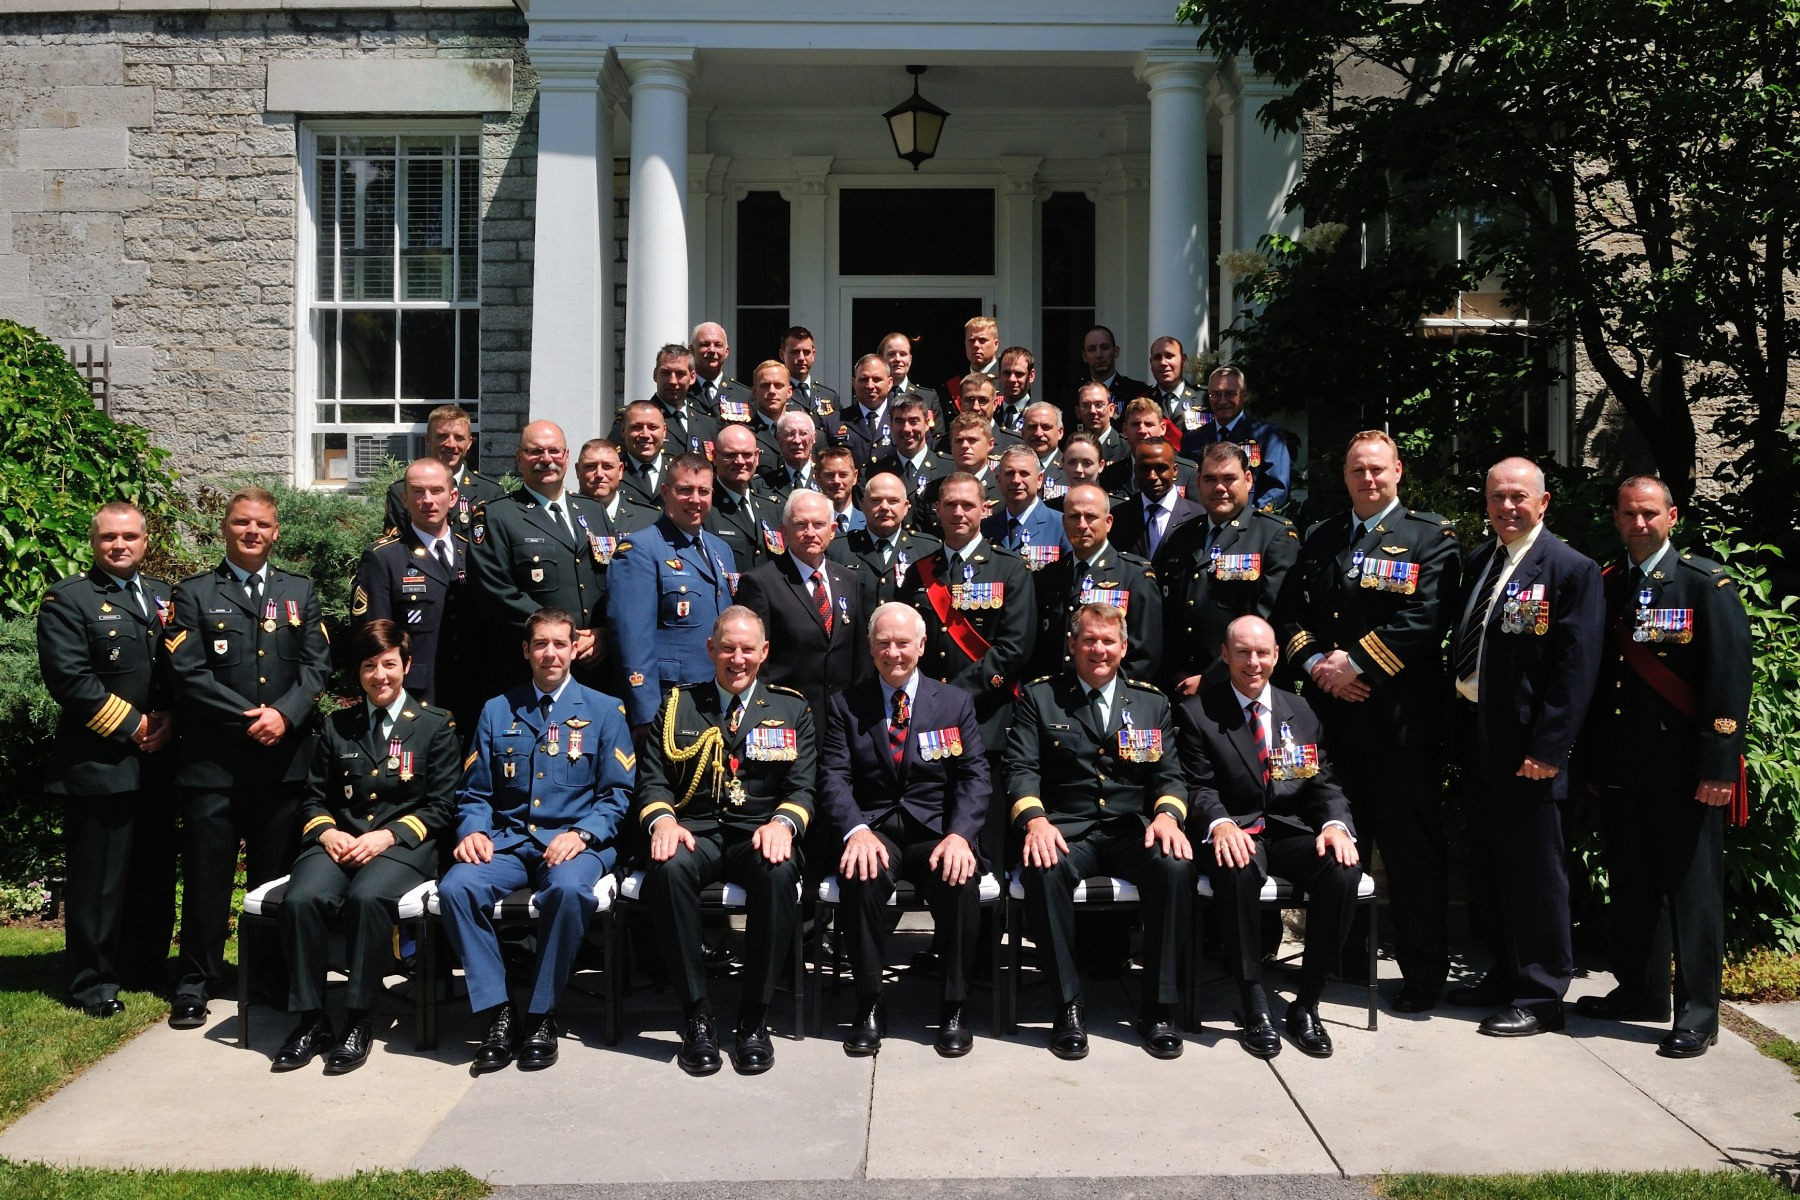 His Excellency the Right Honourable David Johnston, Governor General of Canada, and General Walt Natynczyk, Chief of the Defence Staff, are pictured with the 43 recipients who were presented with military decorations.